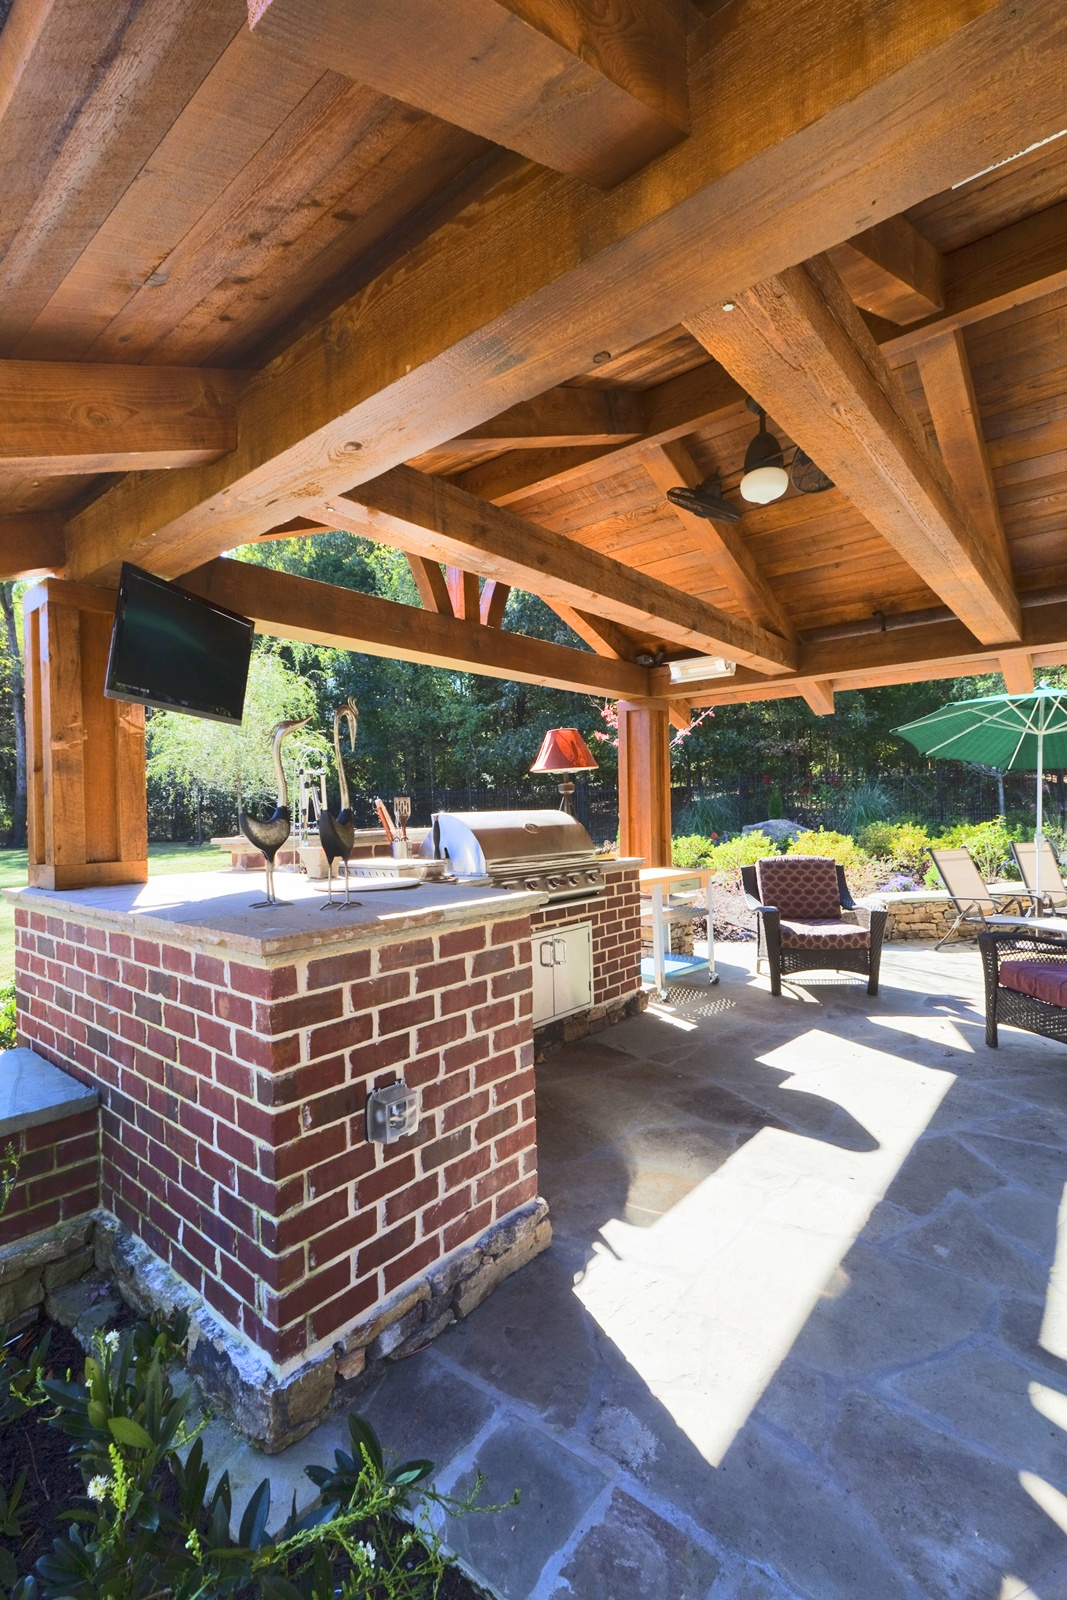 How Much Does It Cost to Design and Build an Outdoor Kitchen? on Cost Of Backyard Remodel id=51111